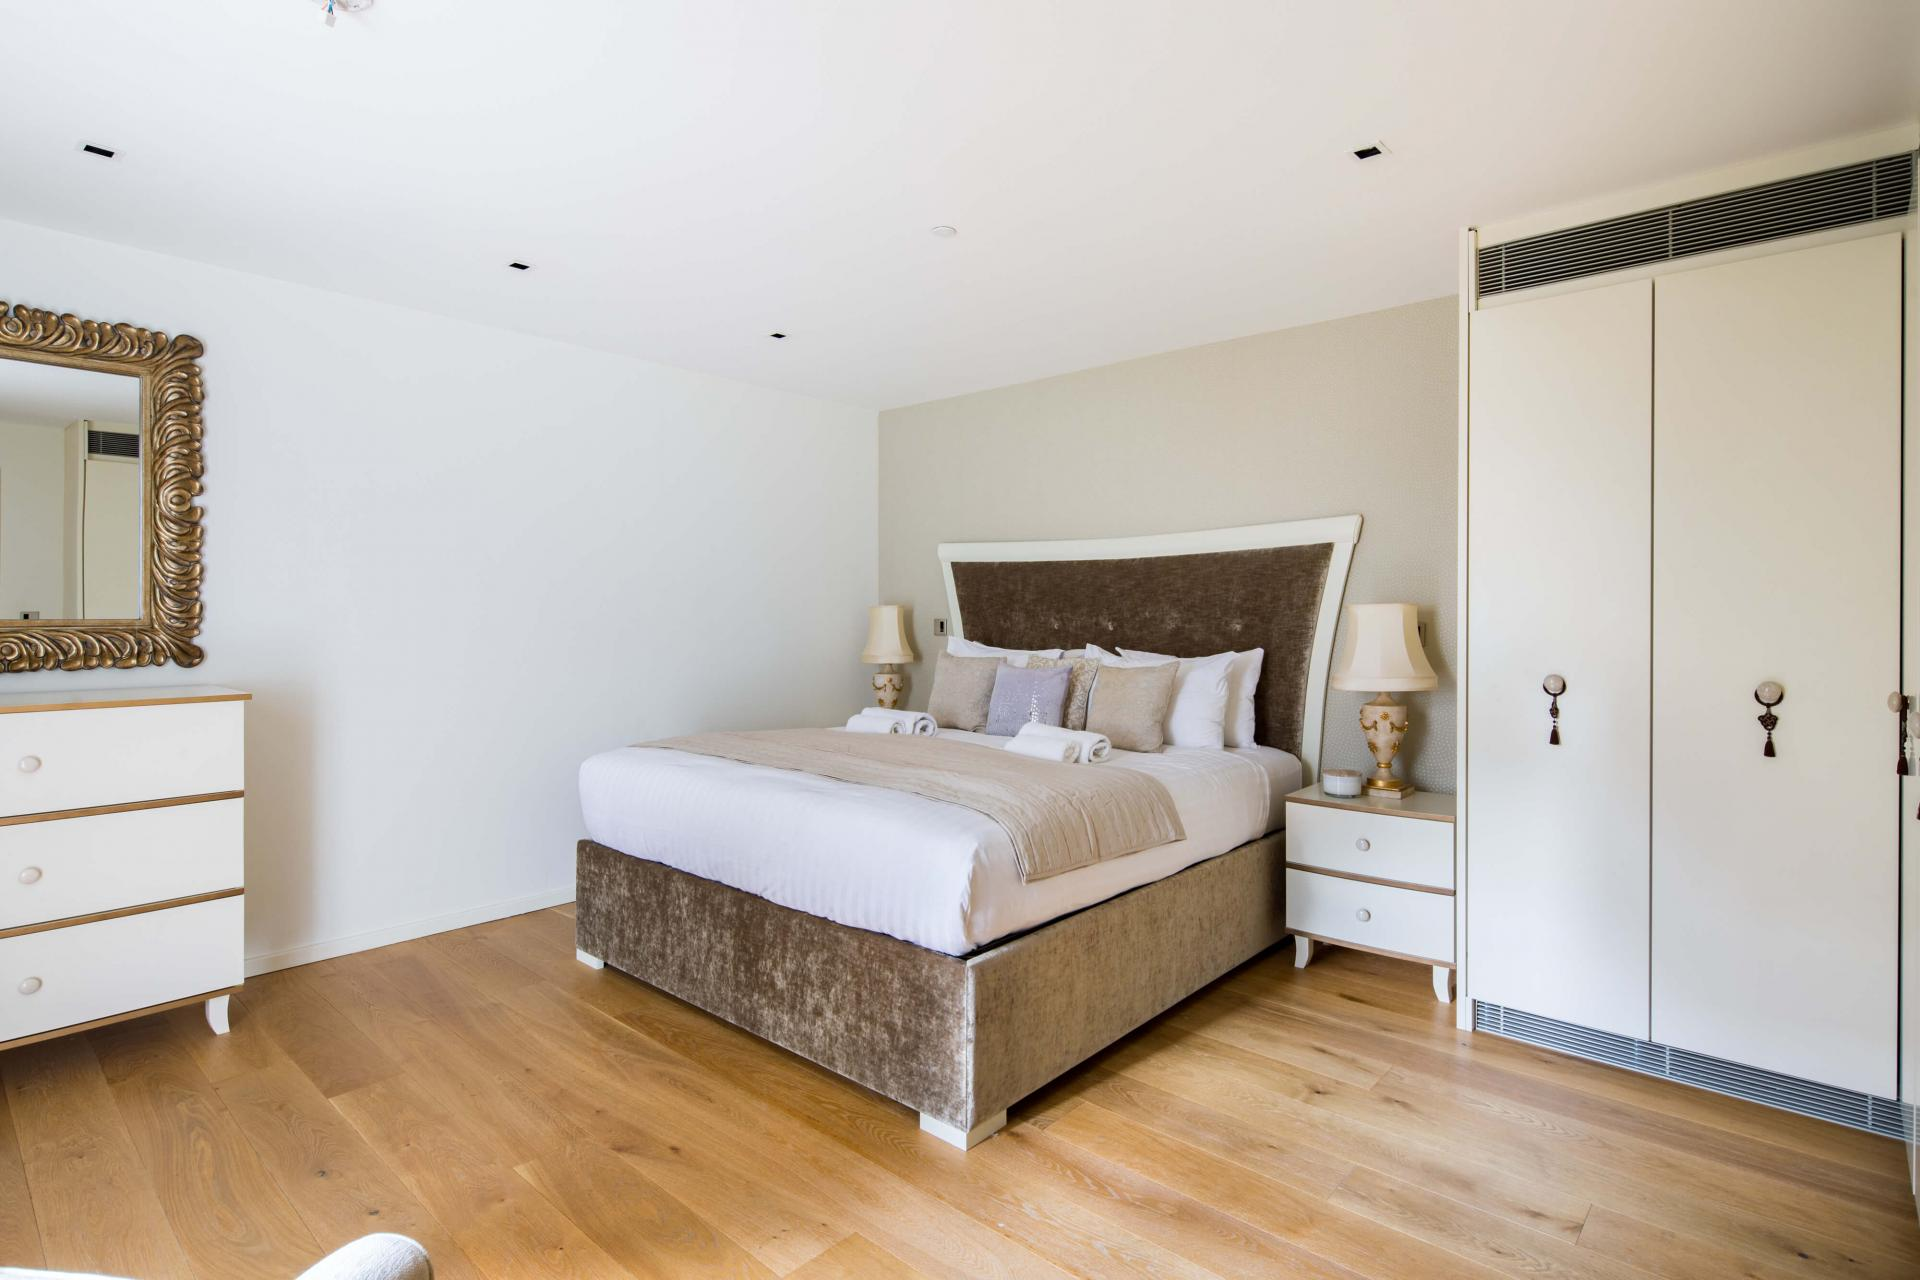 Grand bed at Meritas Court Apartments, Bayswater, London